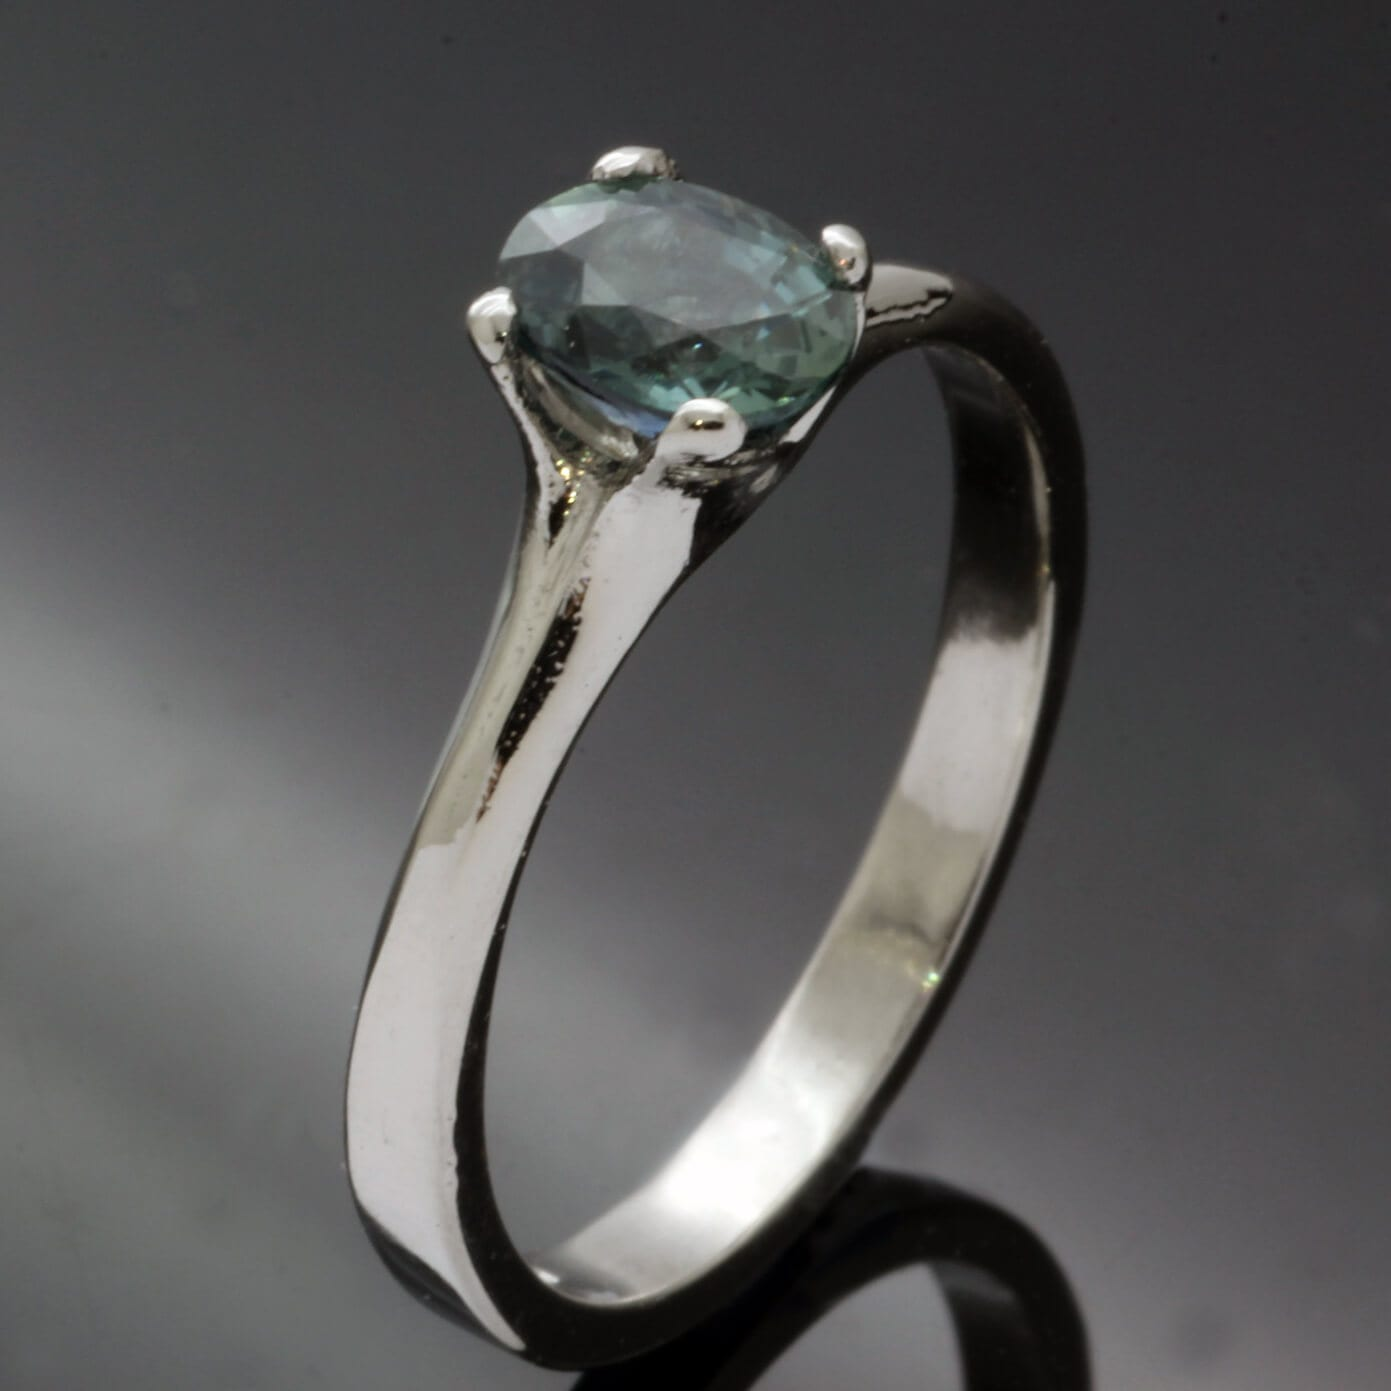 Modern and unique Platinum Teal Sapphire engagement ring